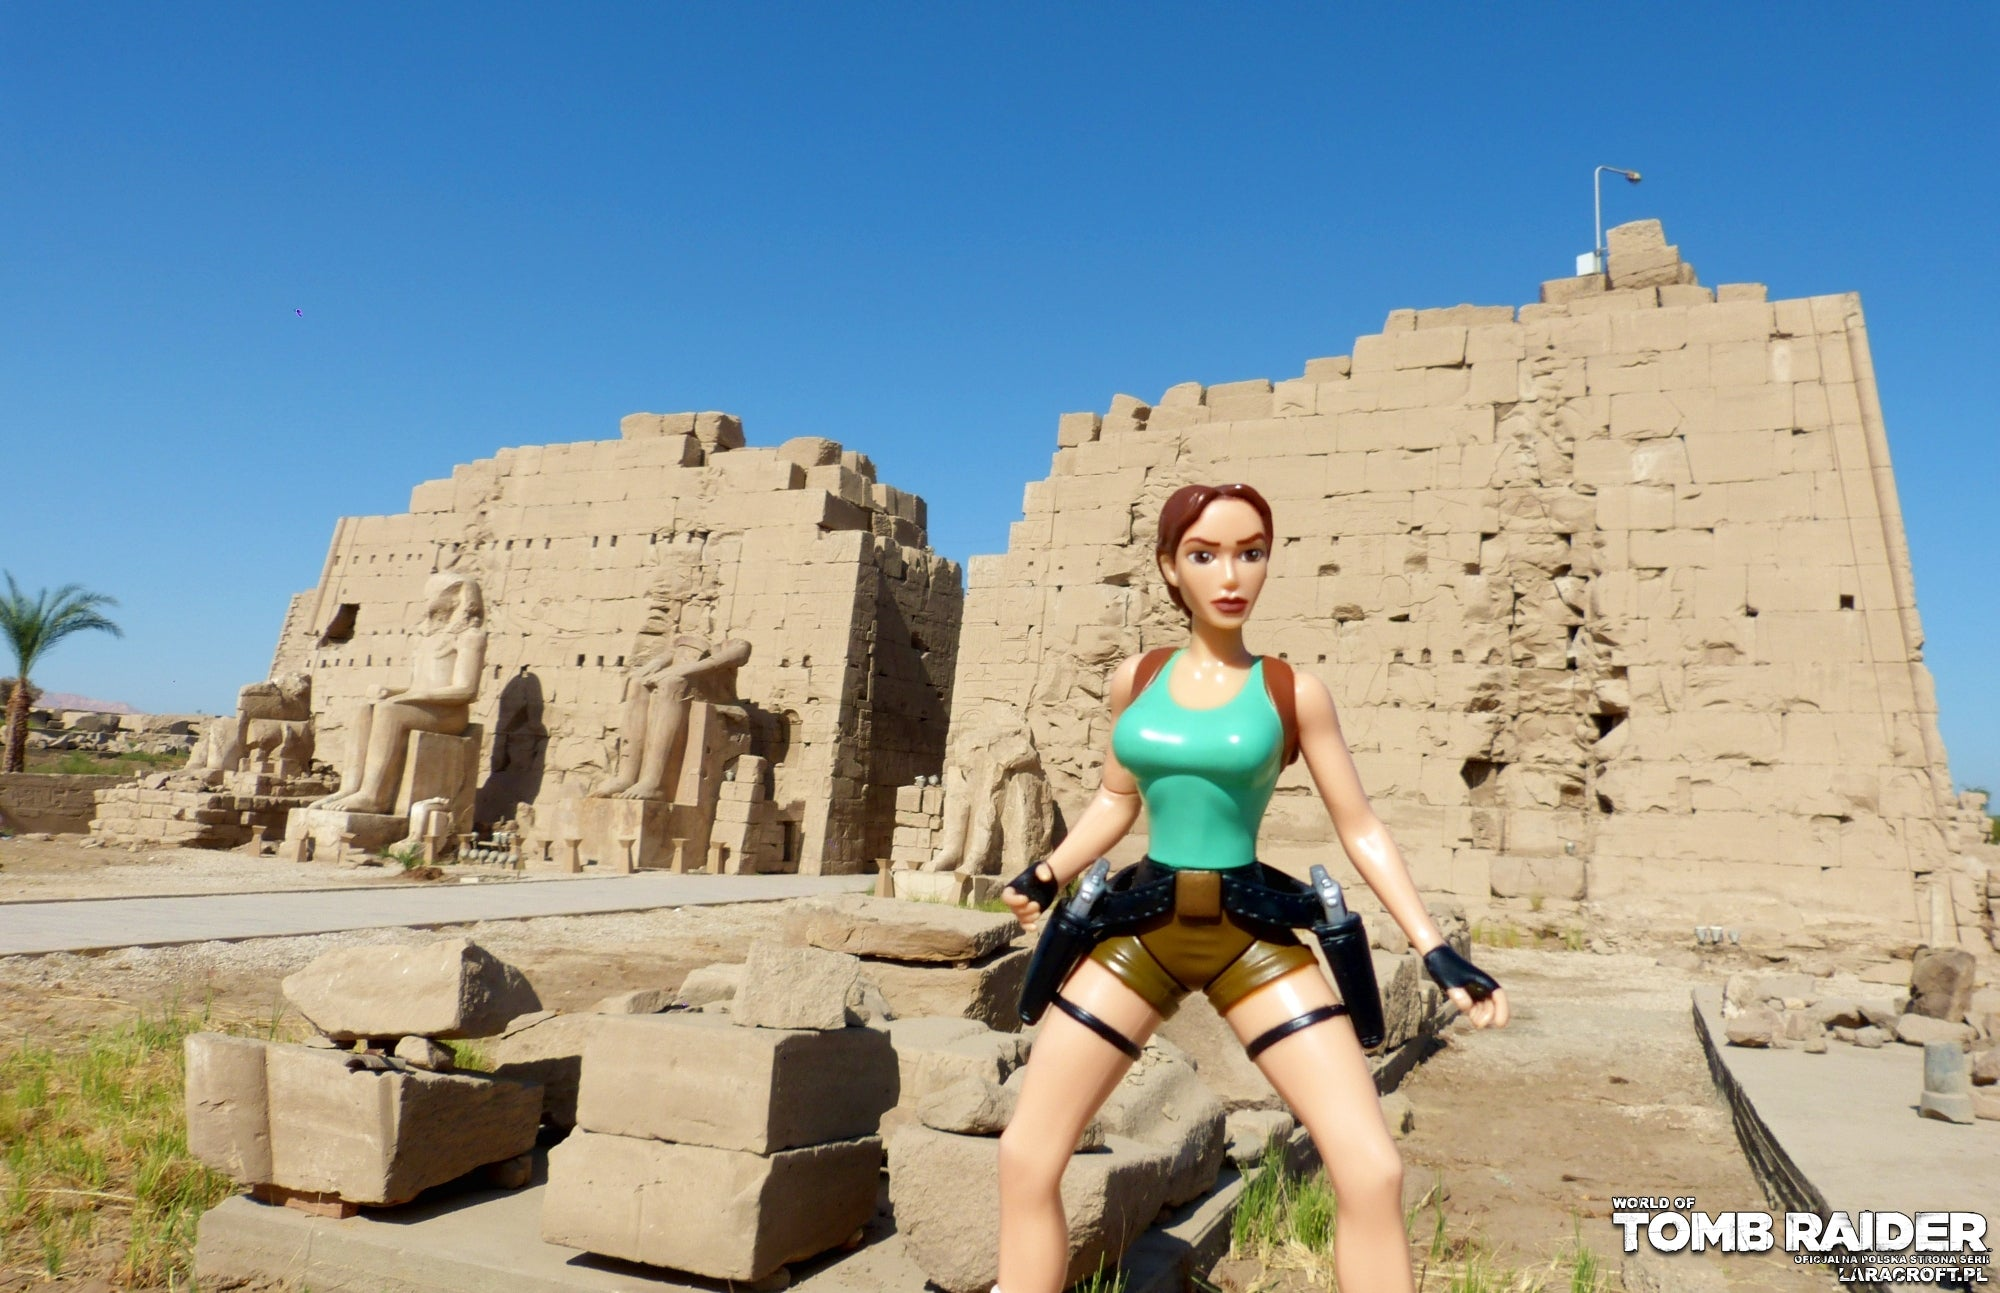 A photograph of a Lara Croft figure in front of the Temple of Karnak in Egypt